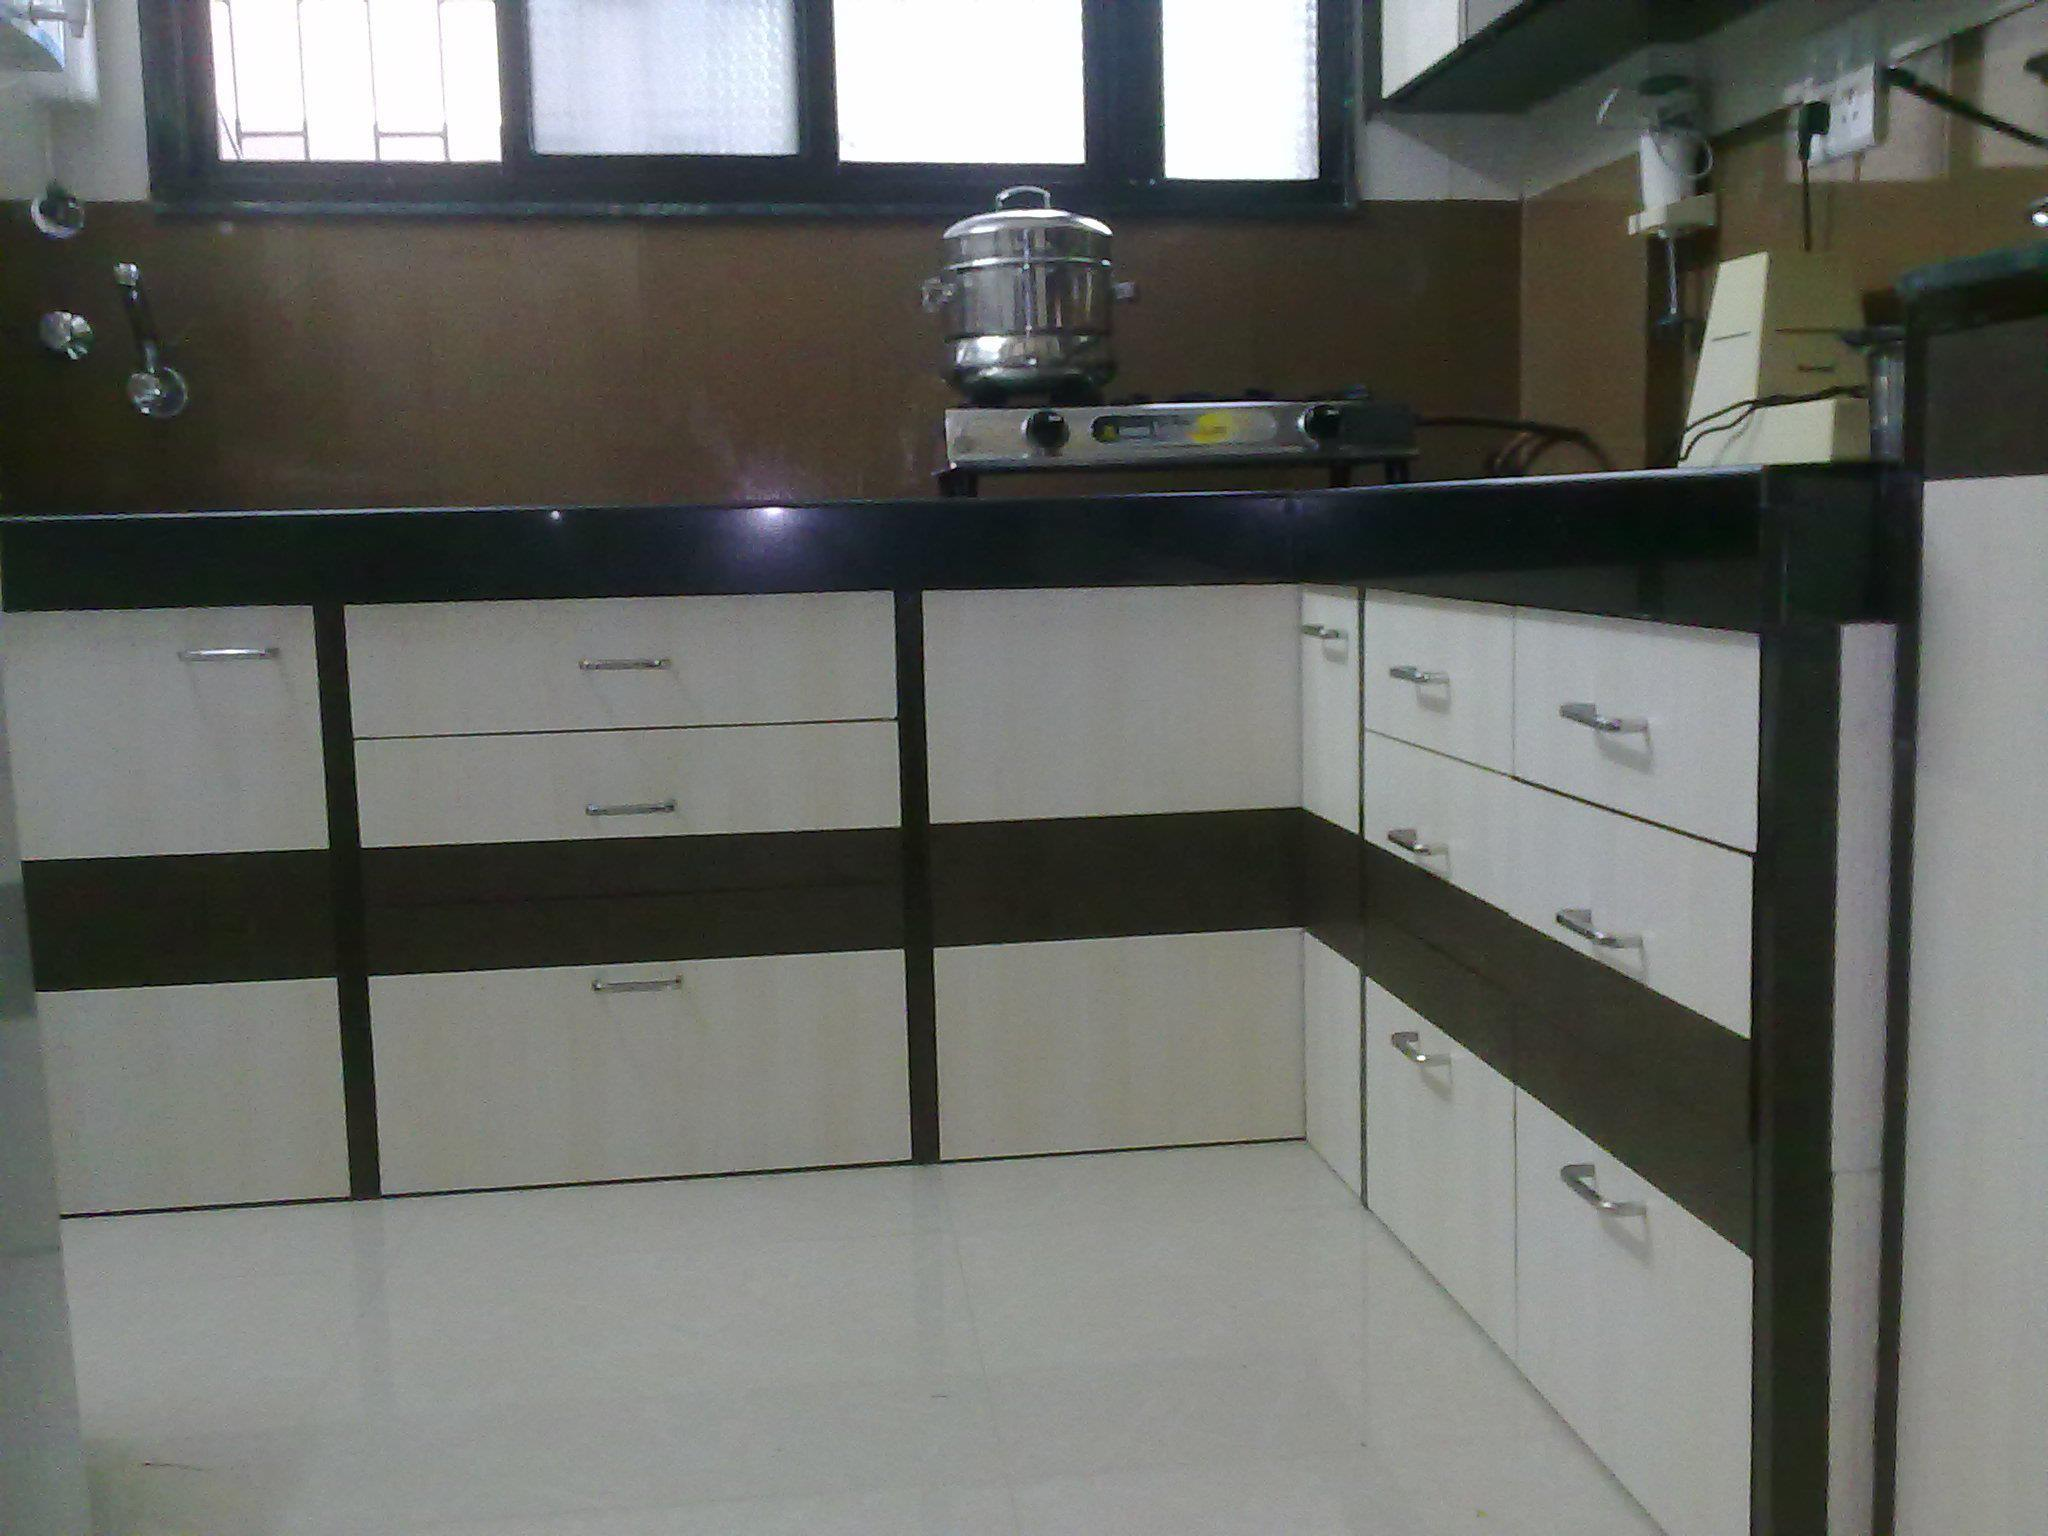 Kitchen cupboard design in laminates gharexpert for Kitchen cupboard designs